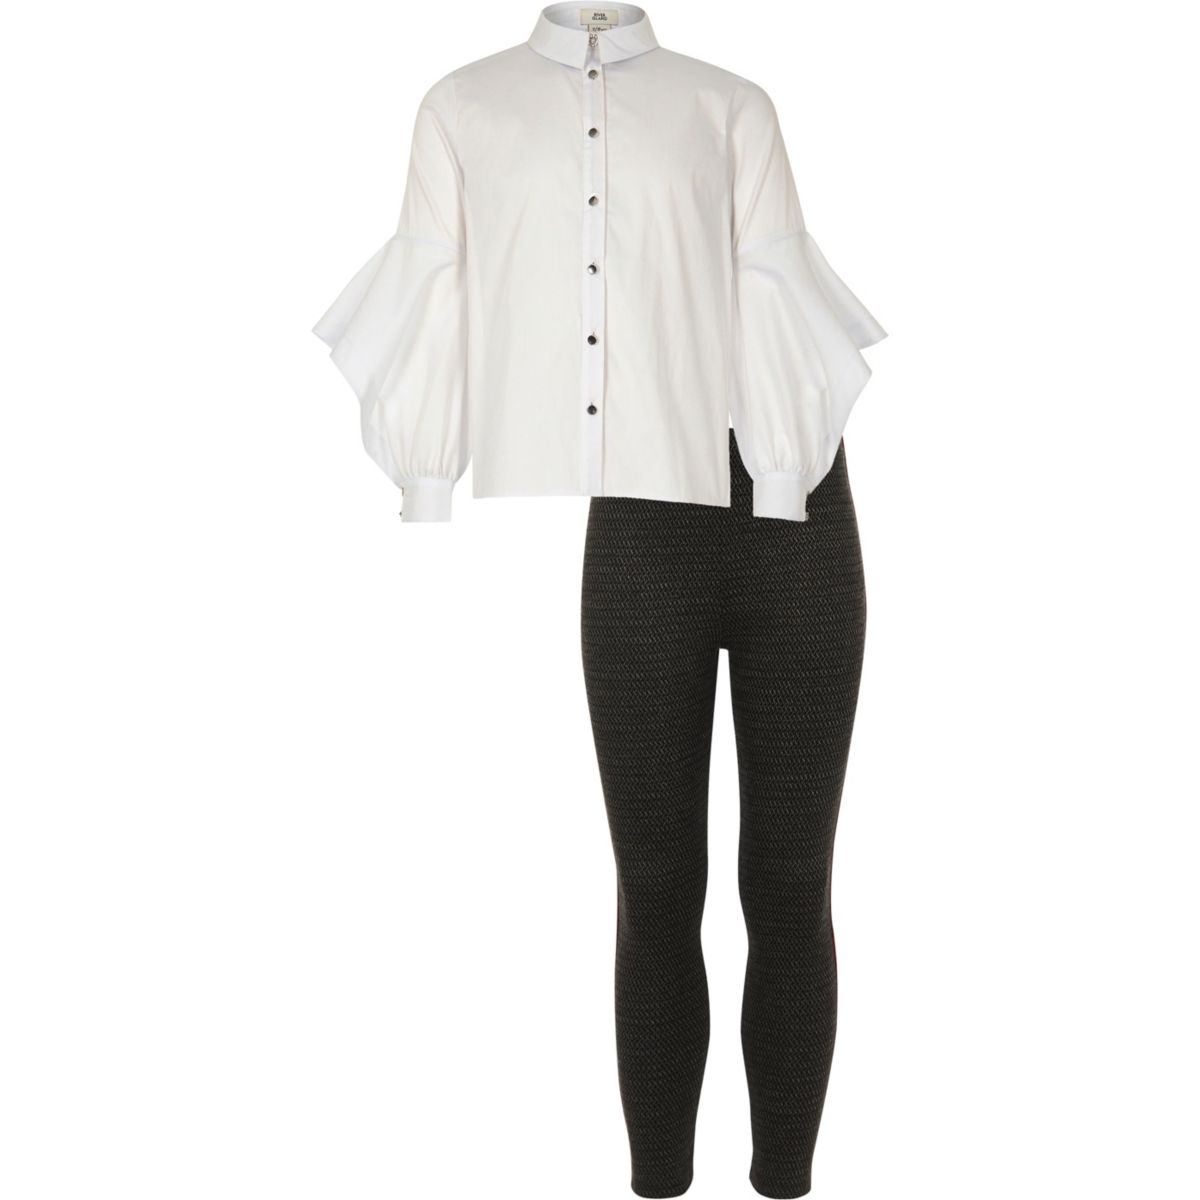 Girls white button shirt and leggings outfit